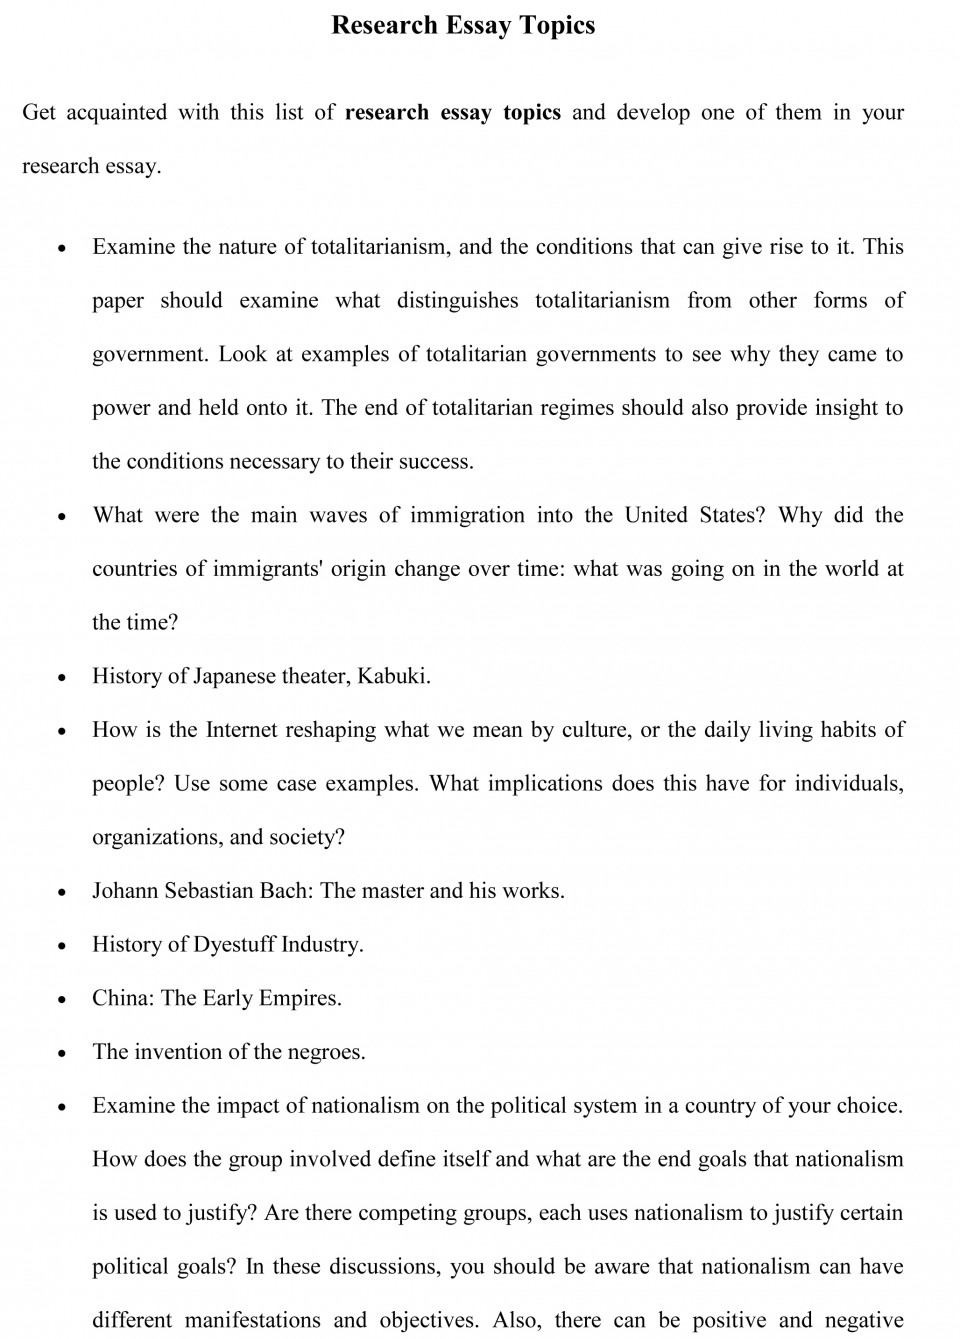 019 Research Paper Political Economy Topics Essay Awesome Global International 960